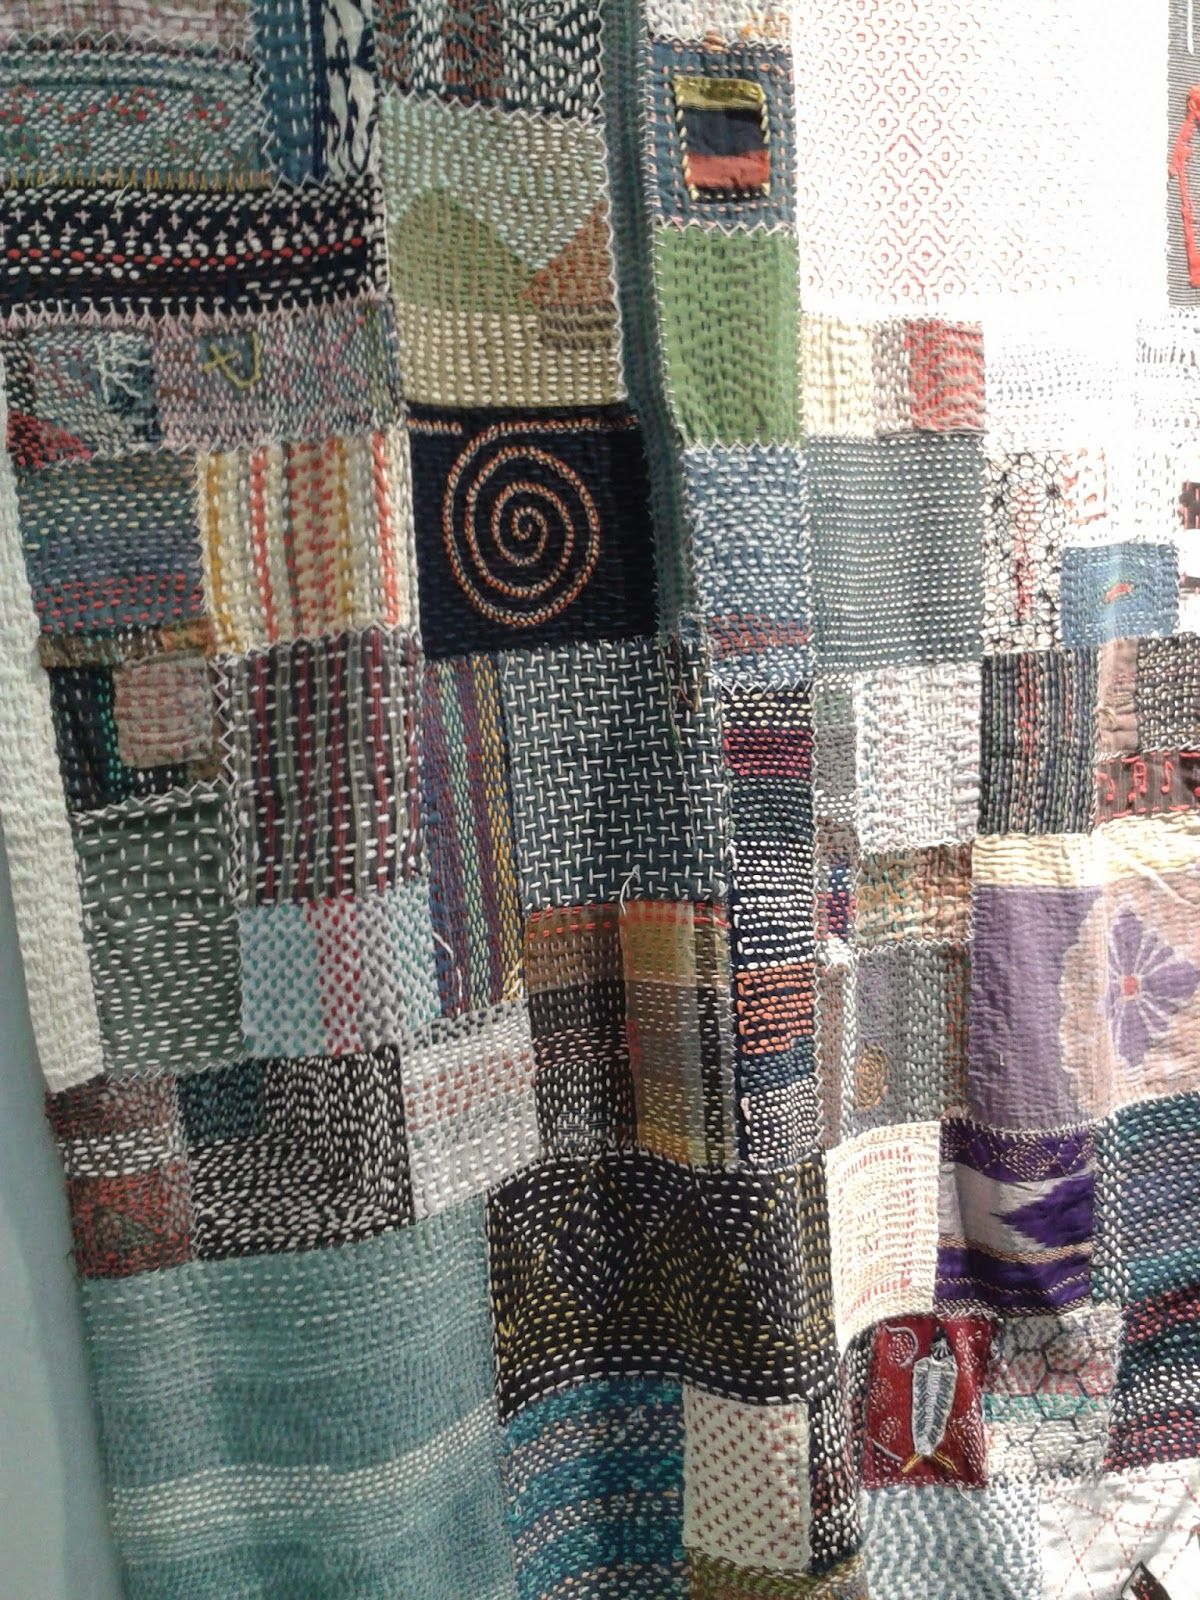 Small Woven Pieces Mixed With Interesting Fabric Pieces